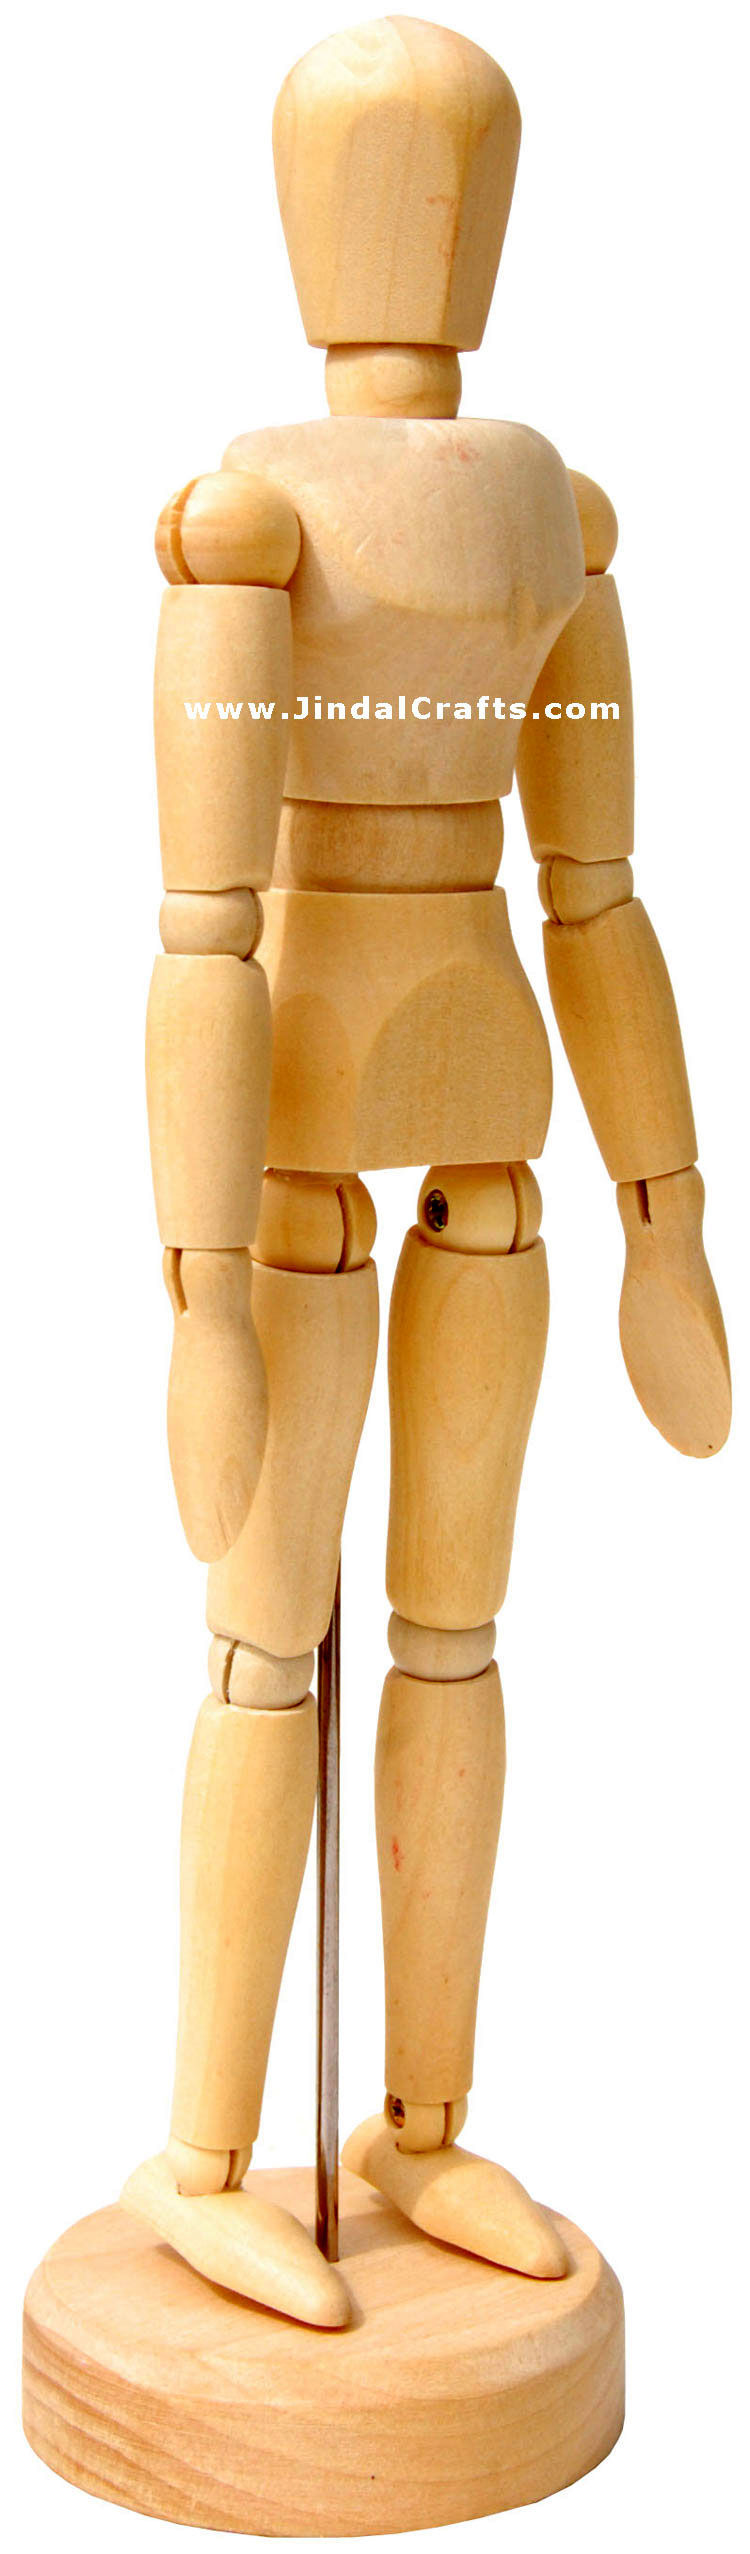 handmade wooden free body toy india traditional